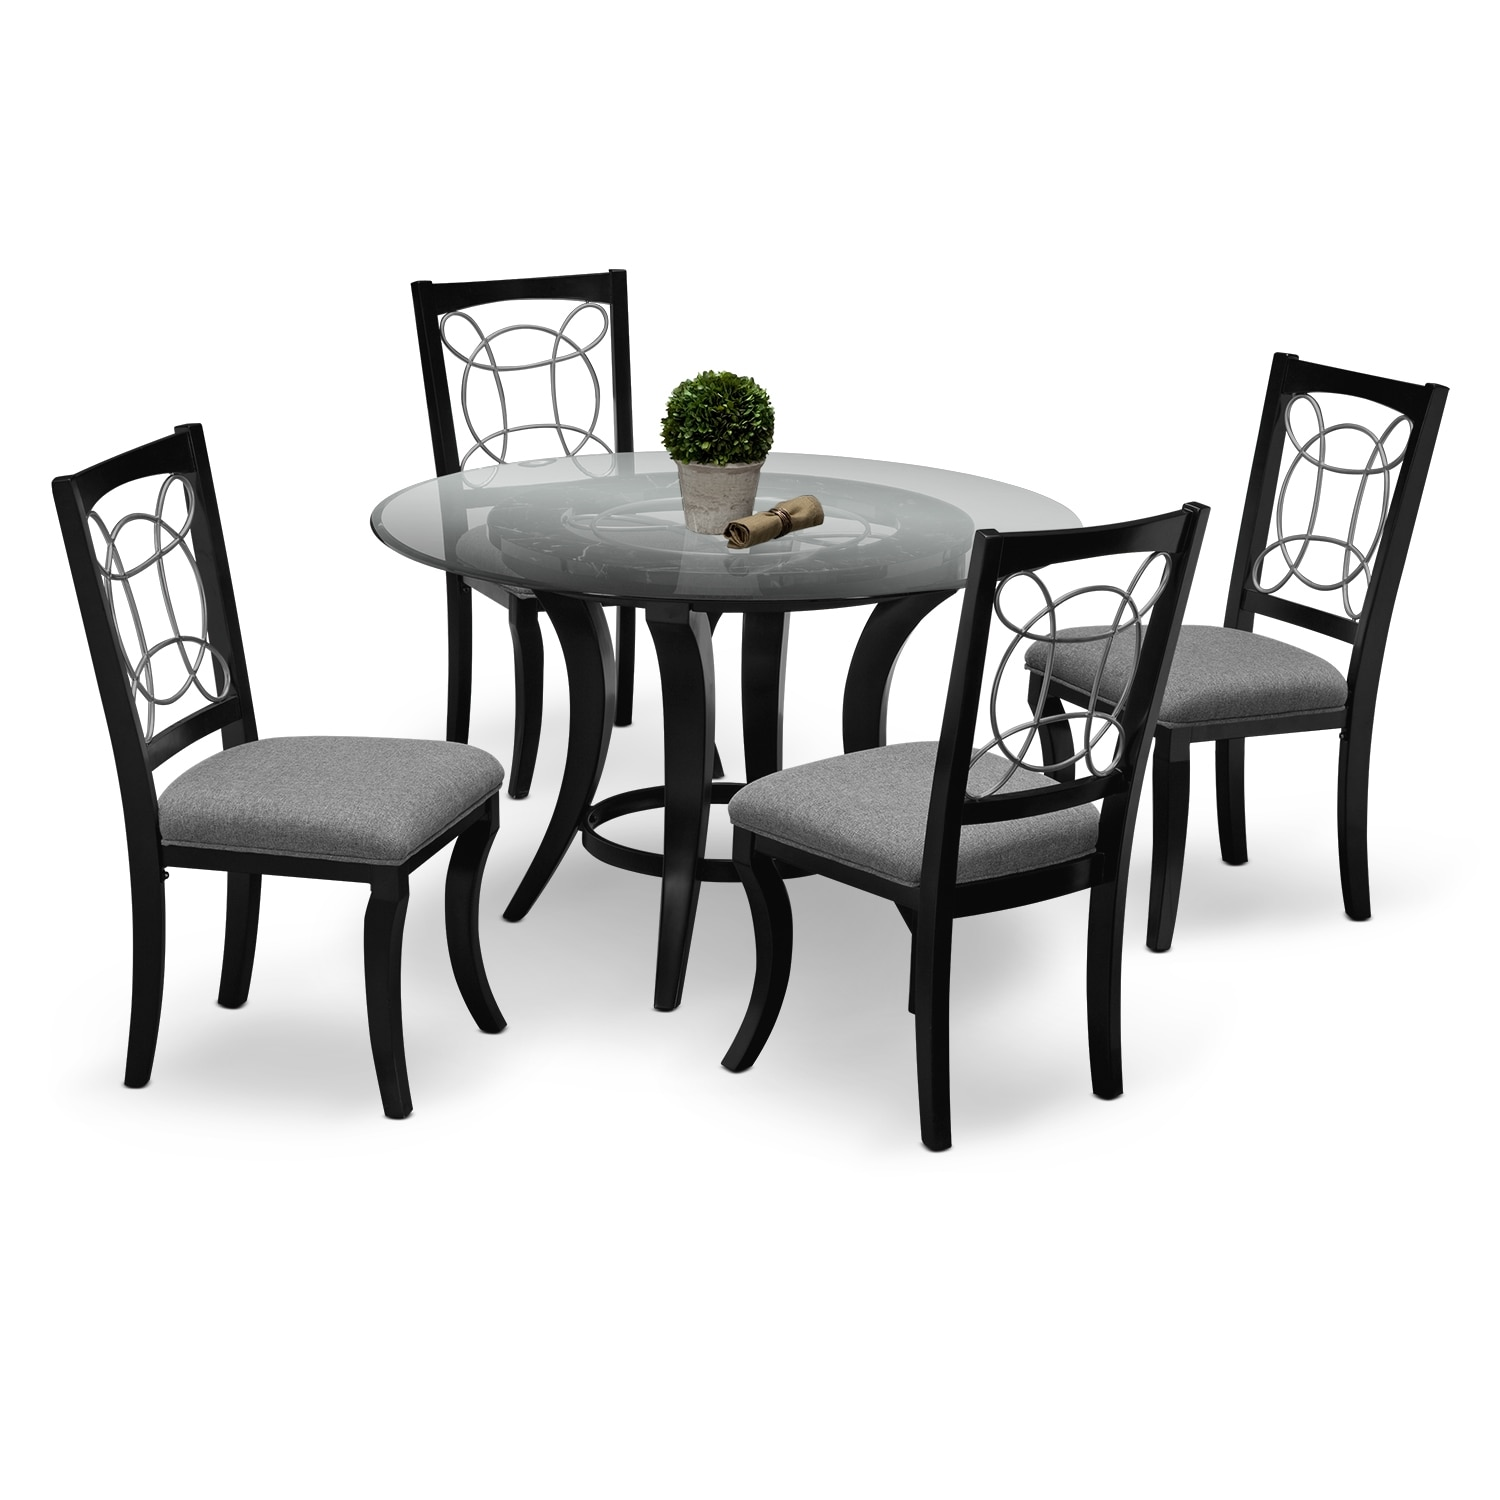 Value City Dining Room Tables Pandora Table And 4 Chairs Black Value City Furniture